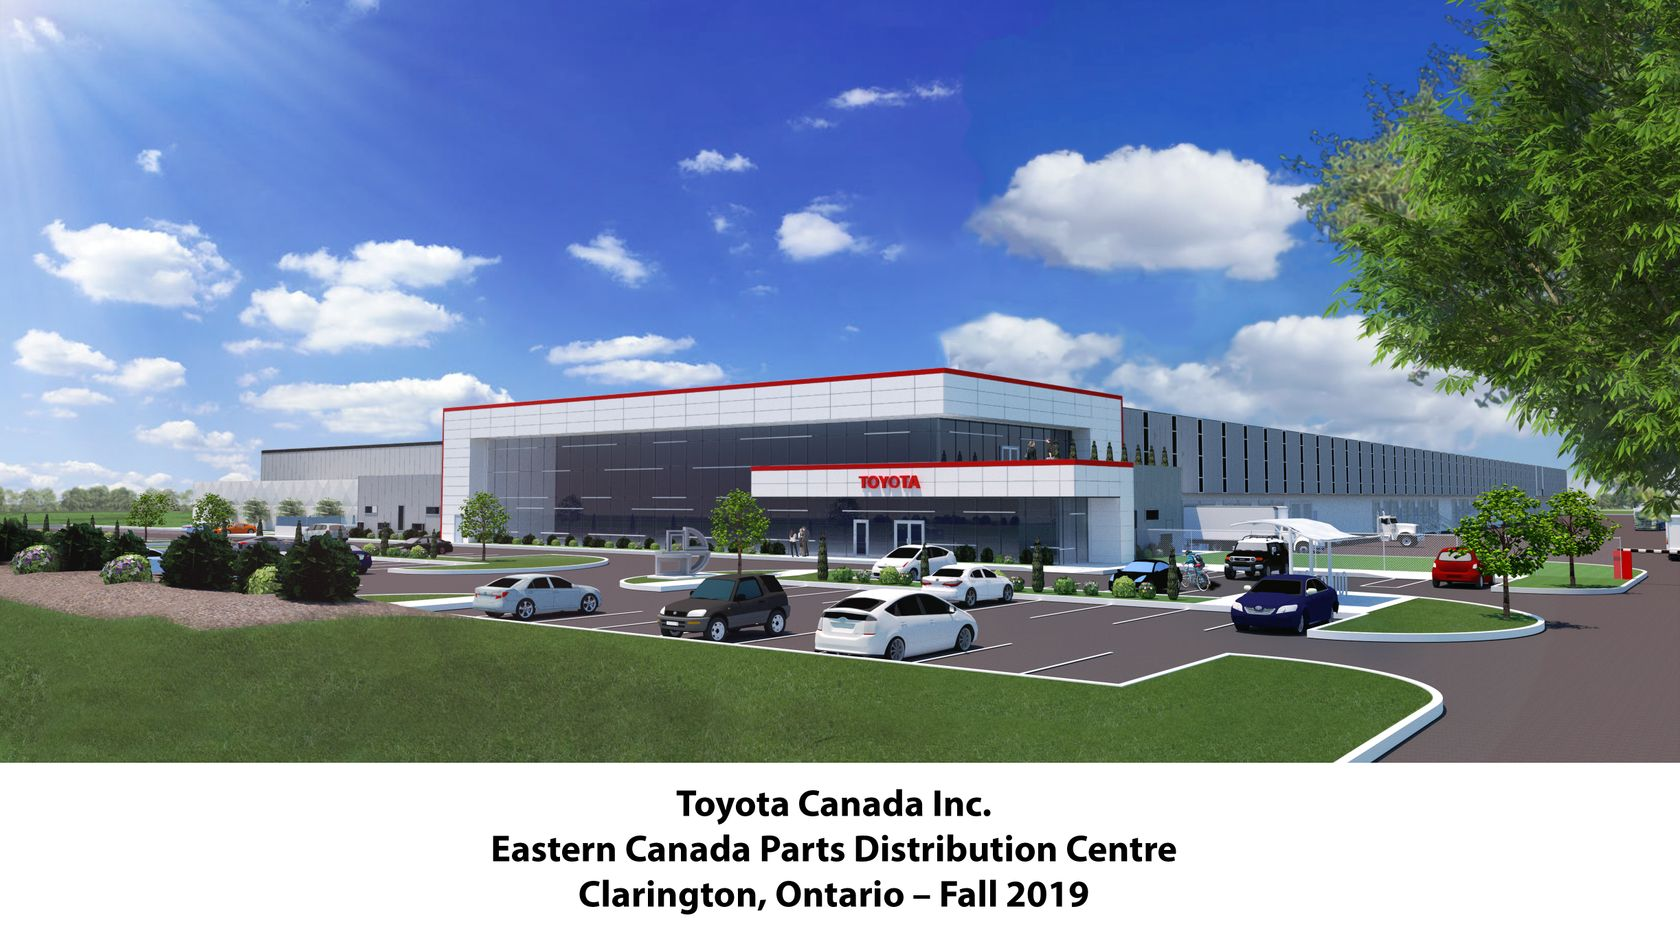 Eastern Canada Parts Distribution Centre (ECPDC)